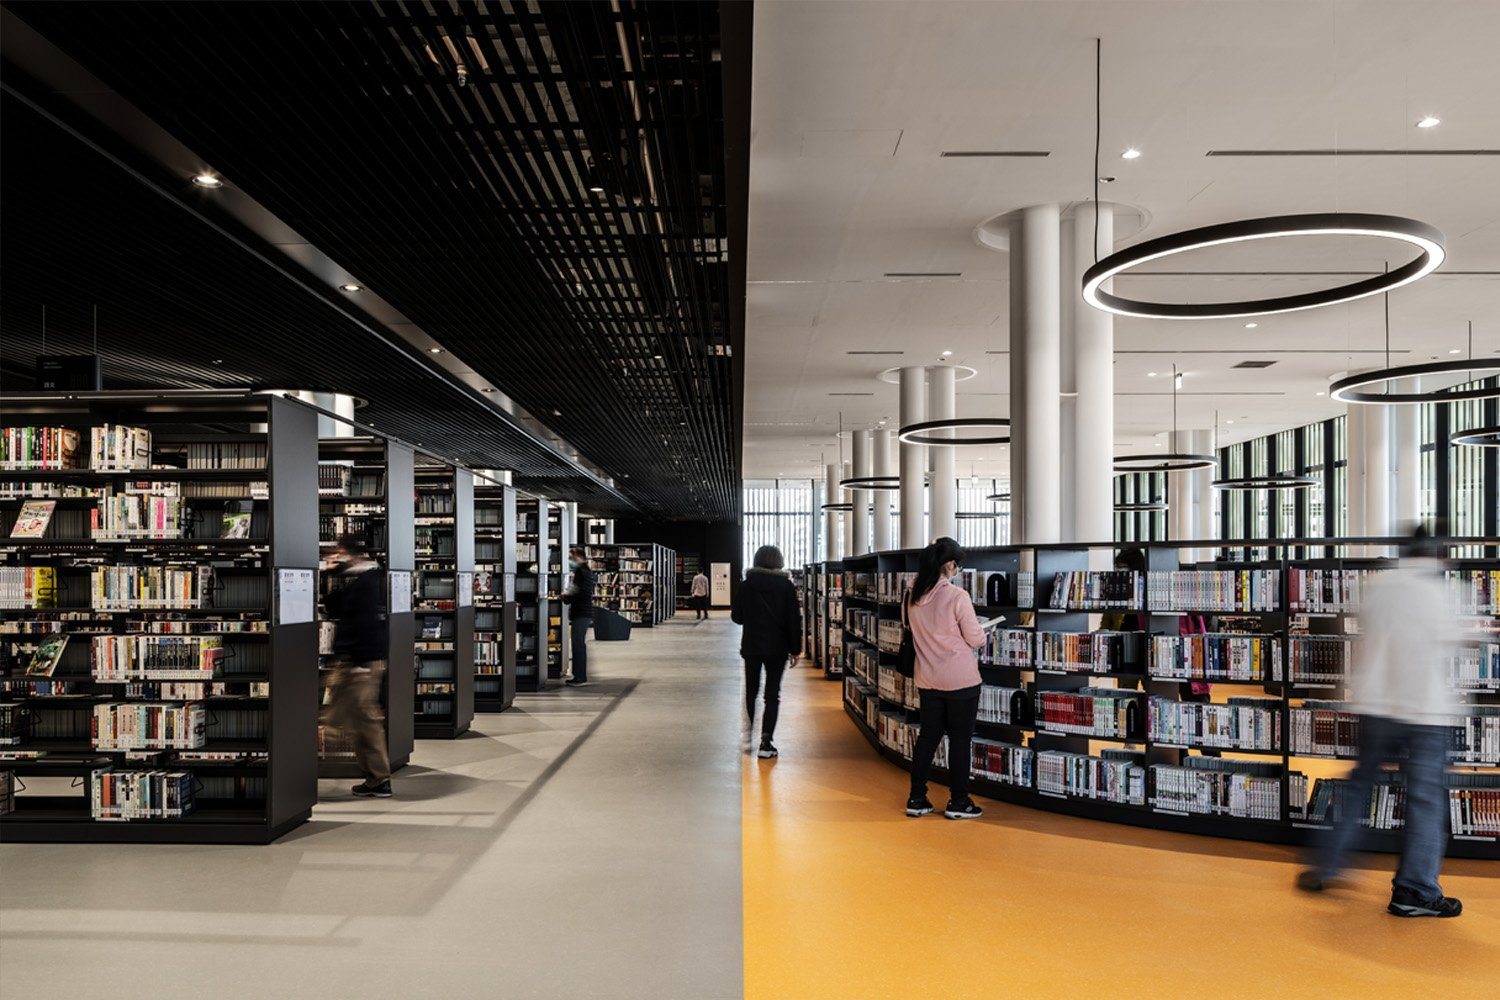 Floor finishing highlighting different areas within the library. Ethan Lee